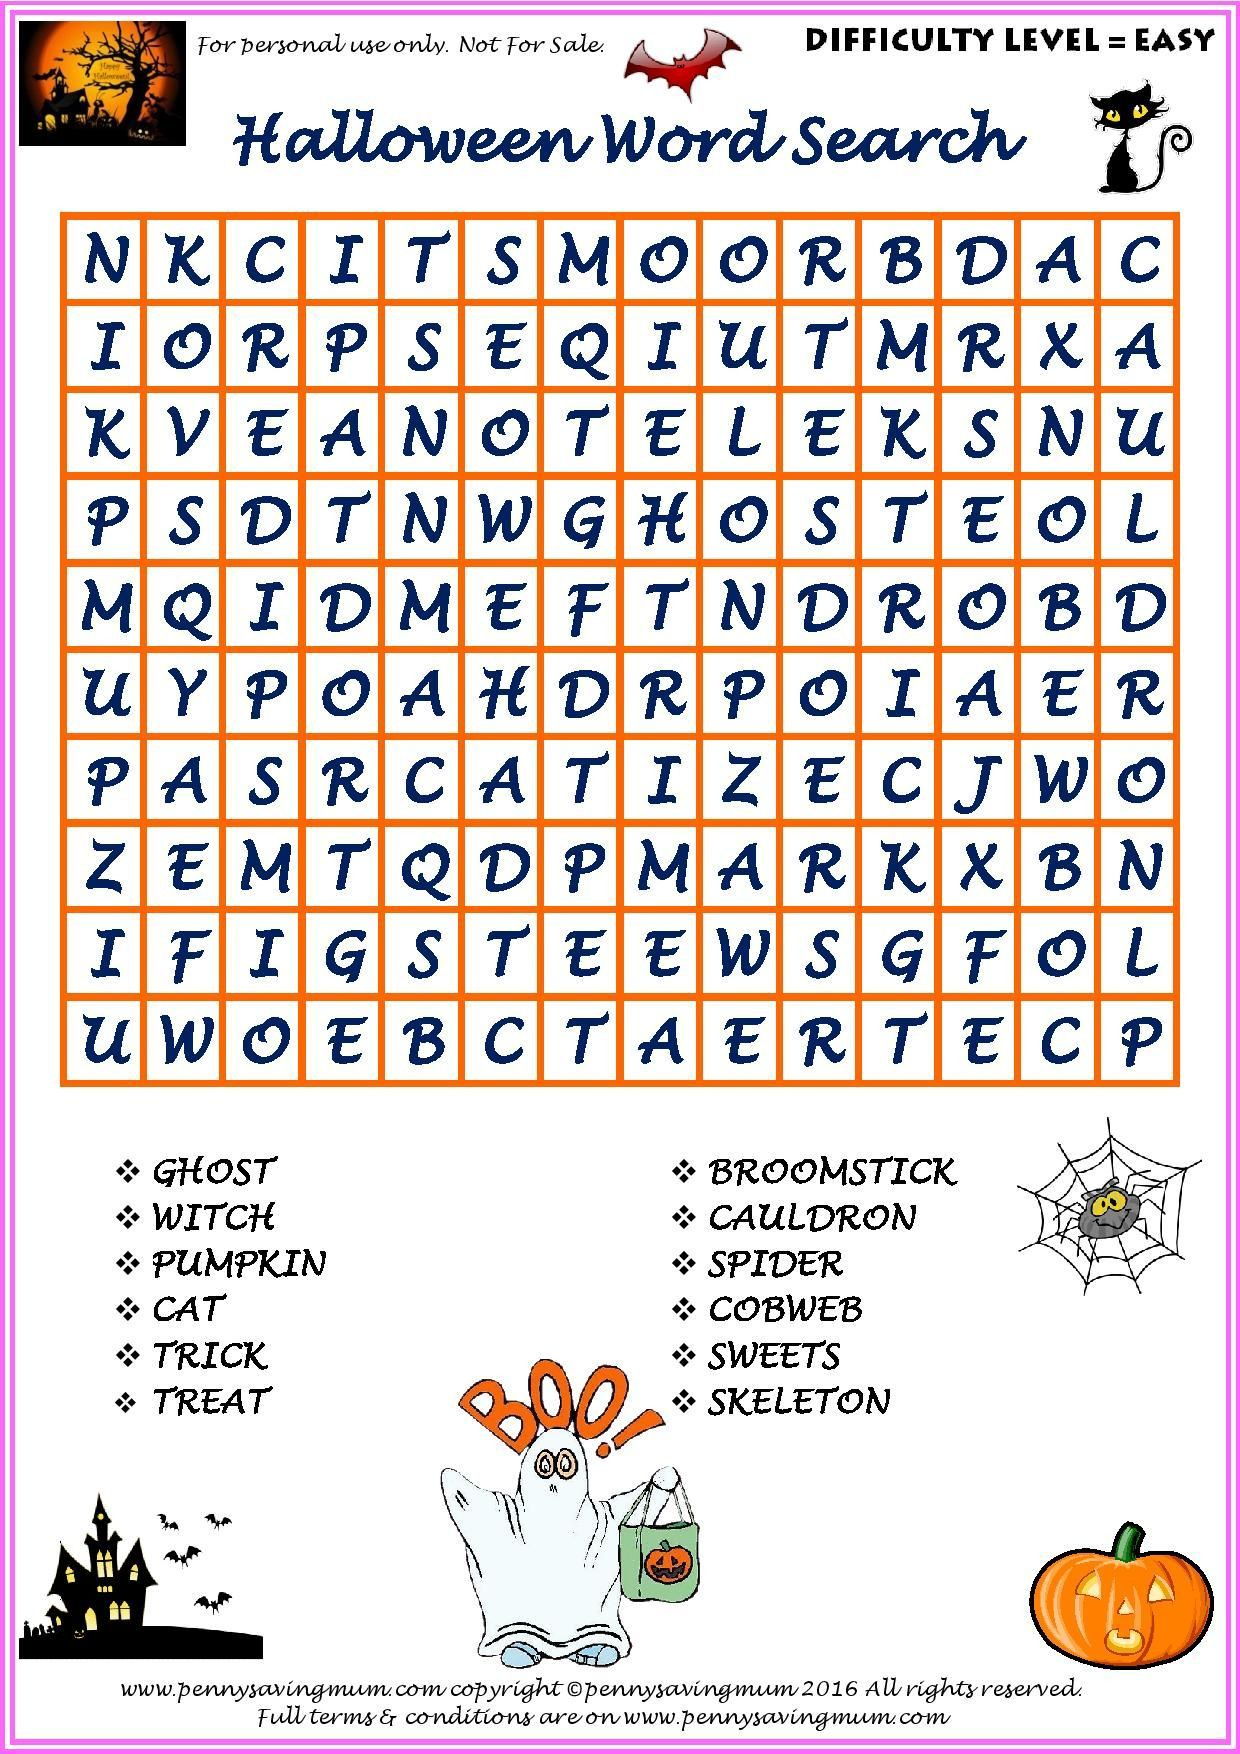 7 Word Puzzle Worksheets Halloween In